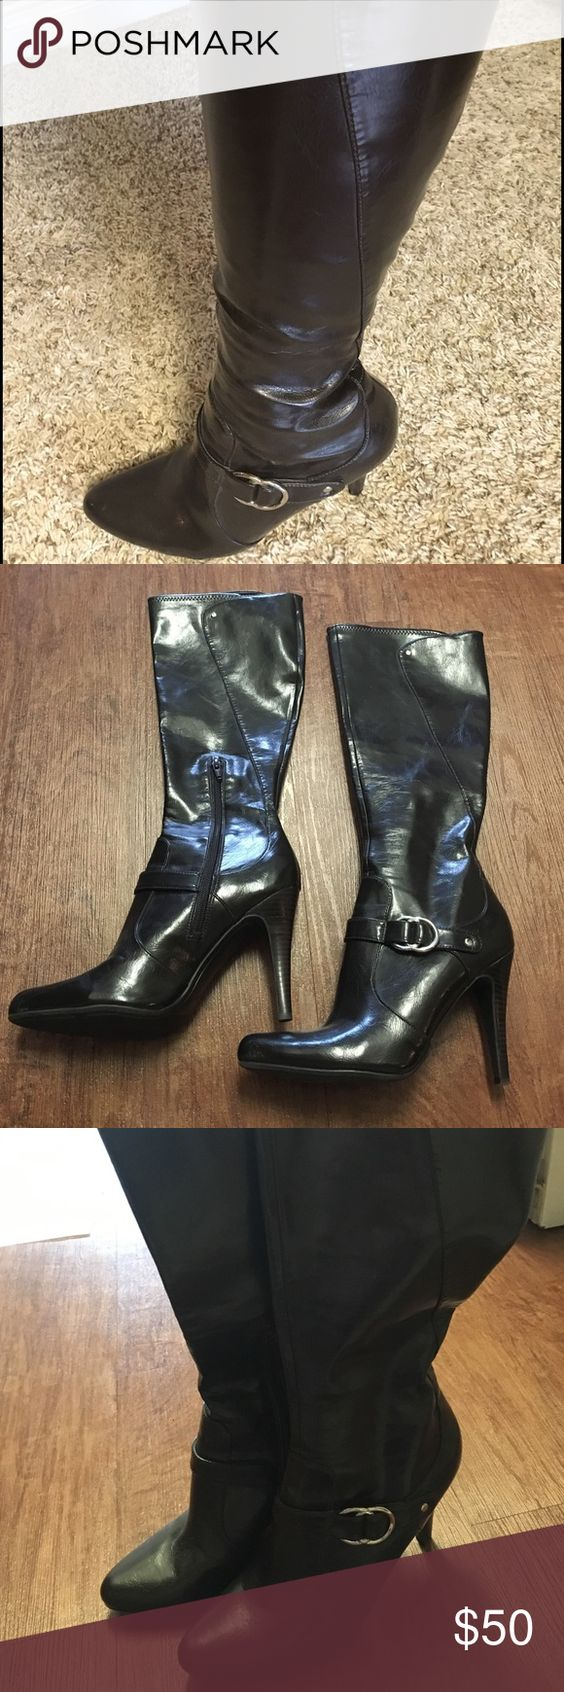 Dark brown heeled leather boots Skin tight tall heeled dark brown leather boots. These boots have been worn once and are in MINT condition. Boots have a modern silver detail to the side of each boot, and the heel is appx 4 inches . Size 9 1/2 Marc Fisher Shoes Heeled Boots